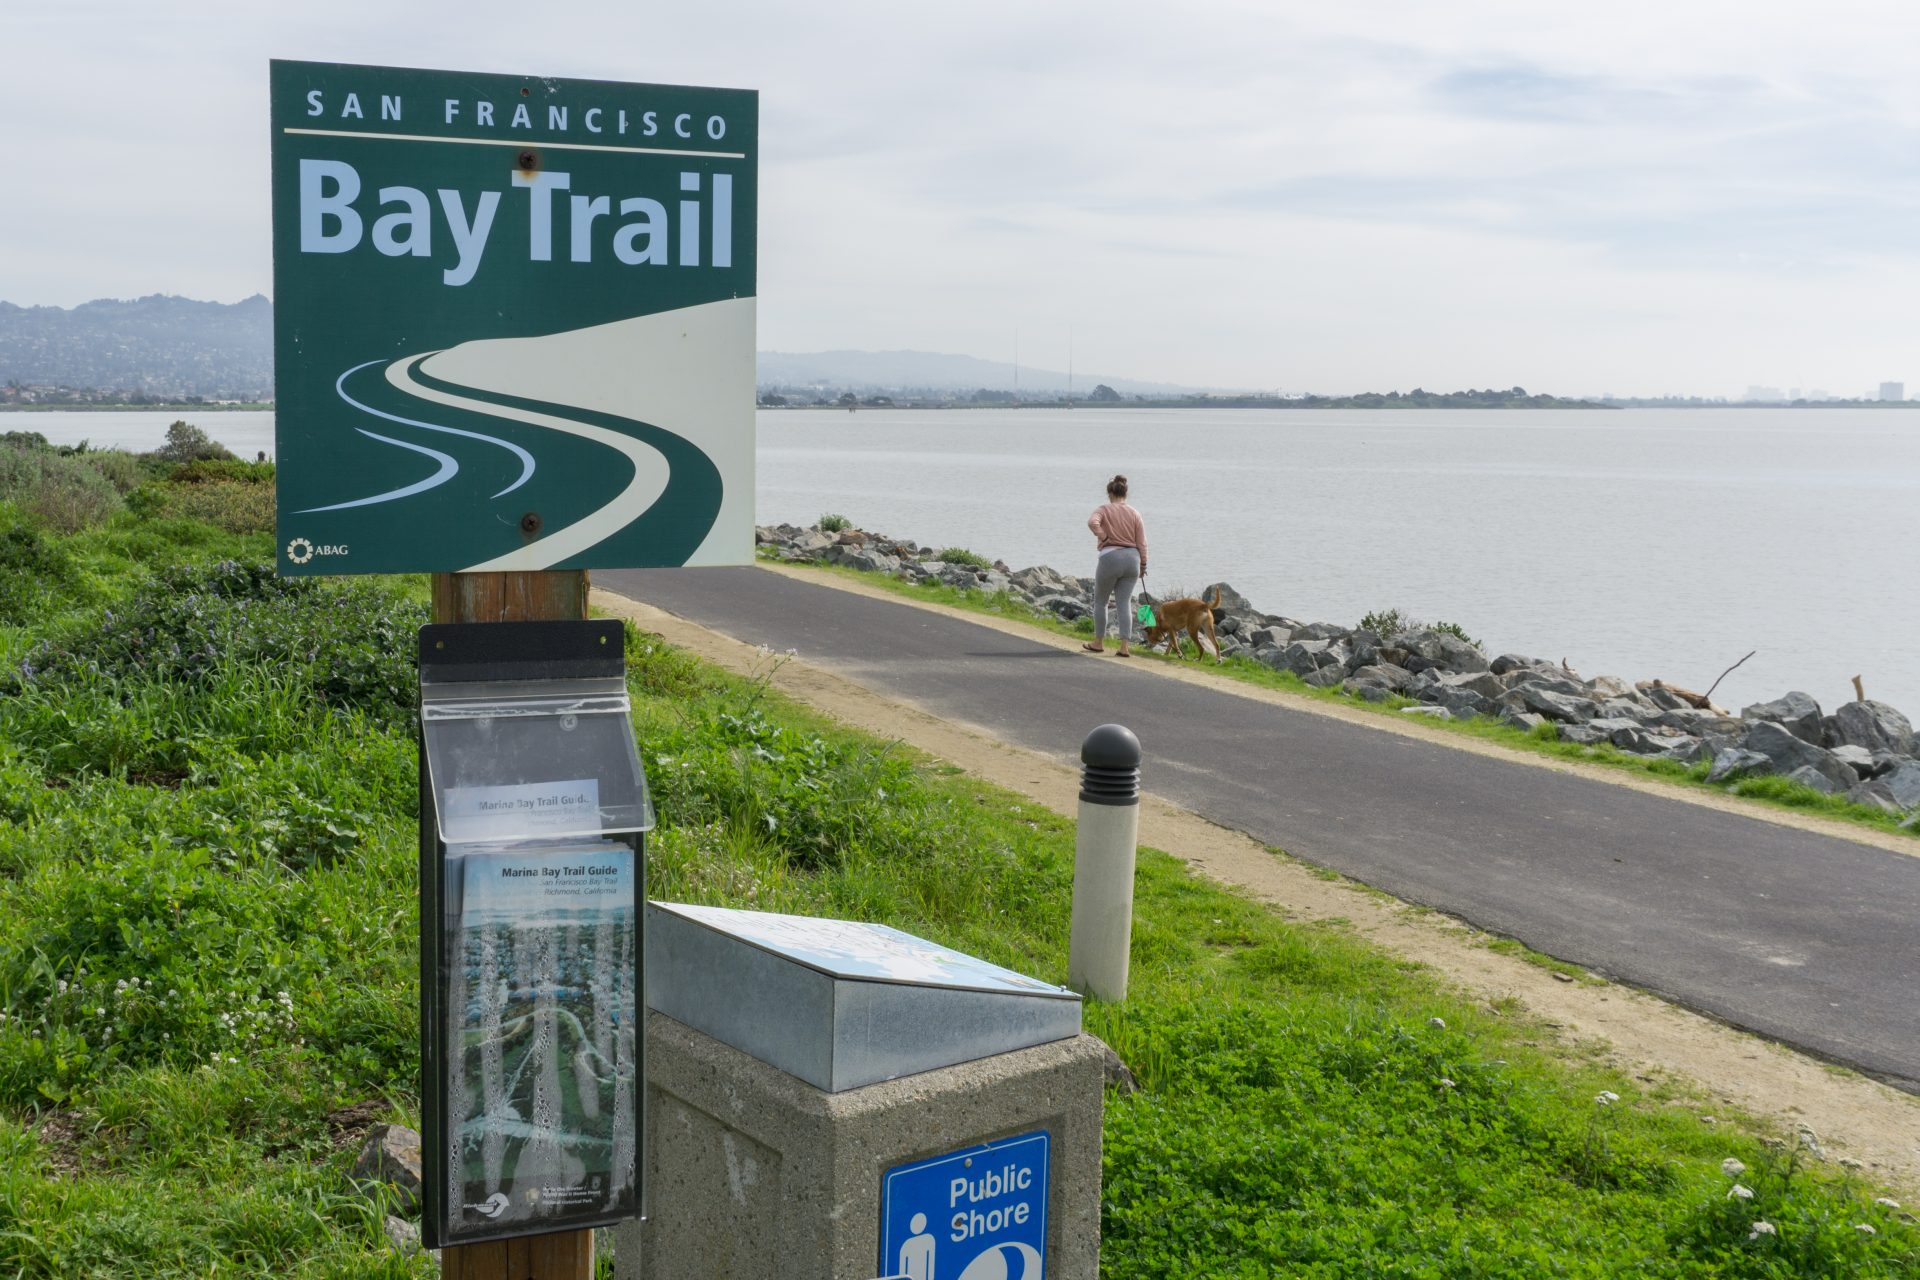 Sign for Bay Trail, with path on right